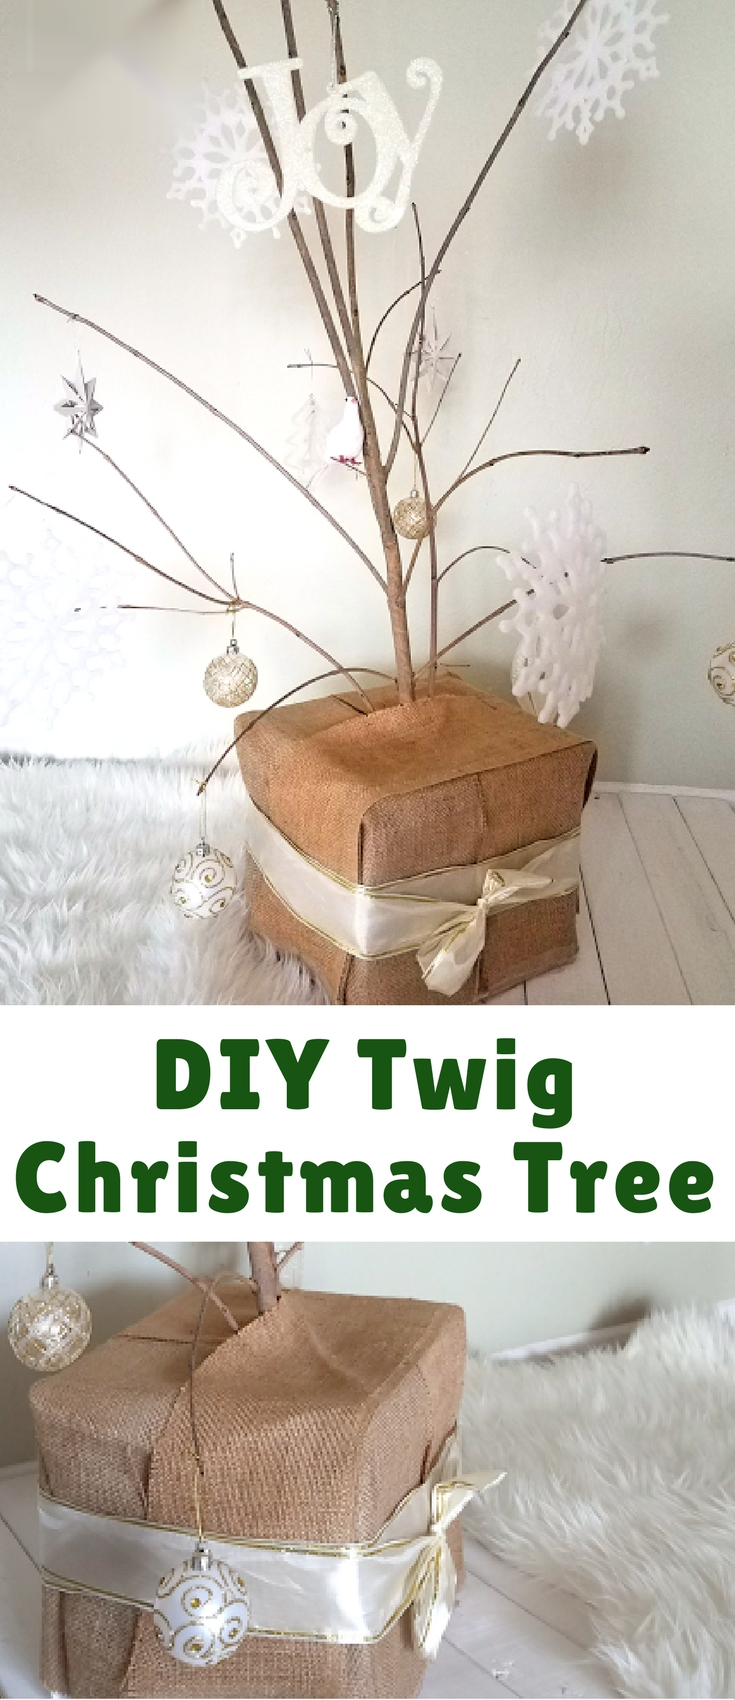 My DIY twig Christmas tree has turned into my favorite Christmas decoration in our house! It is minimalist yet interesting, and it cost a grand total of $10, which was the cost of the ornaments and ribbon at the Dollar Tree. Not bad considering that it is adorning our living room for the third year!